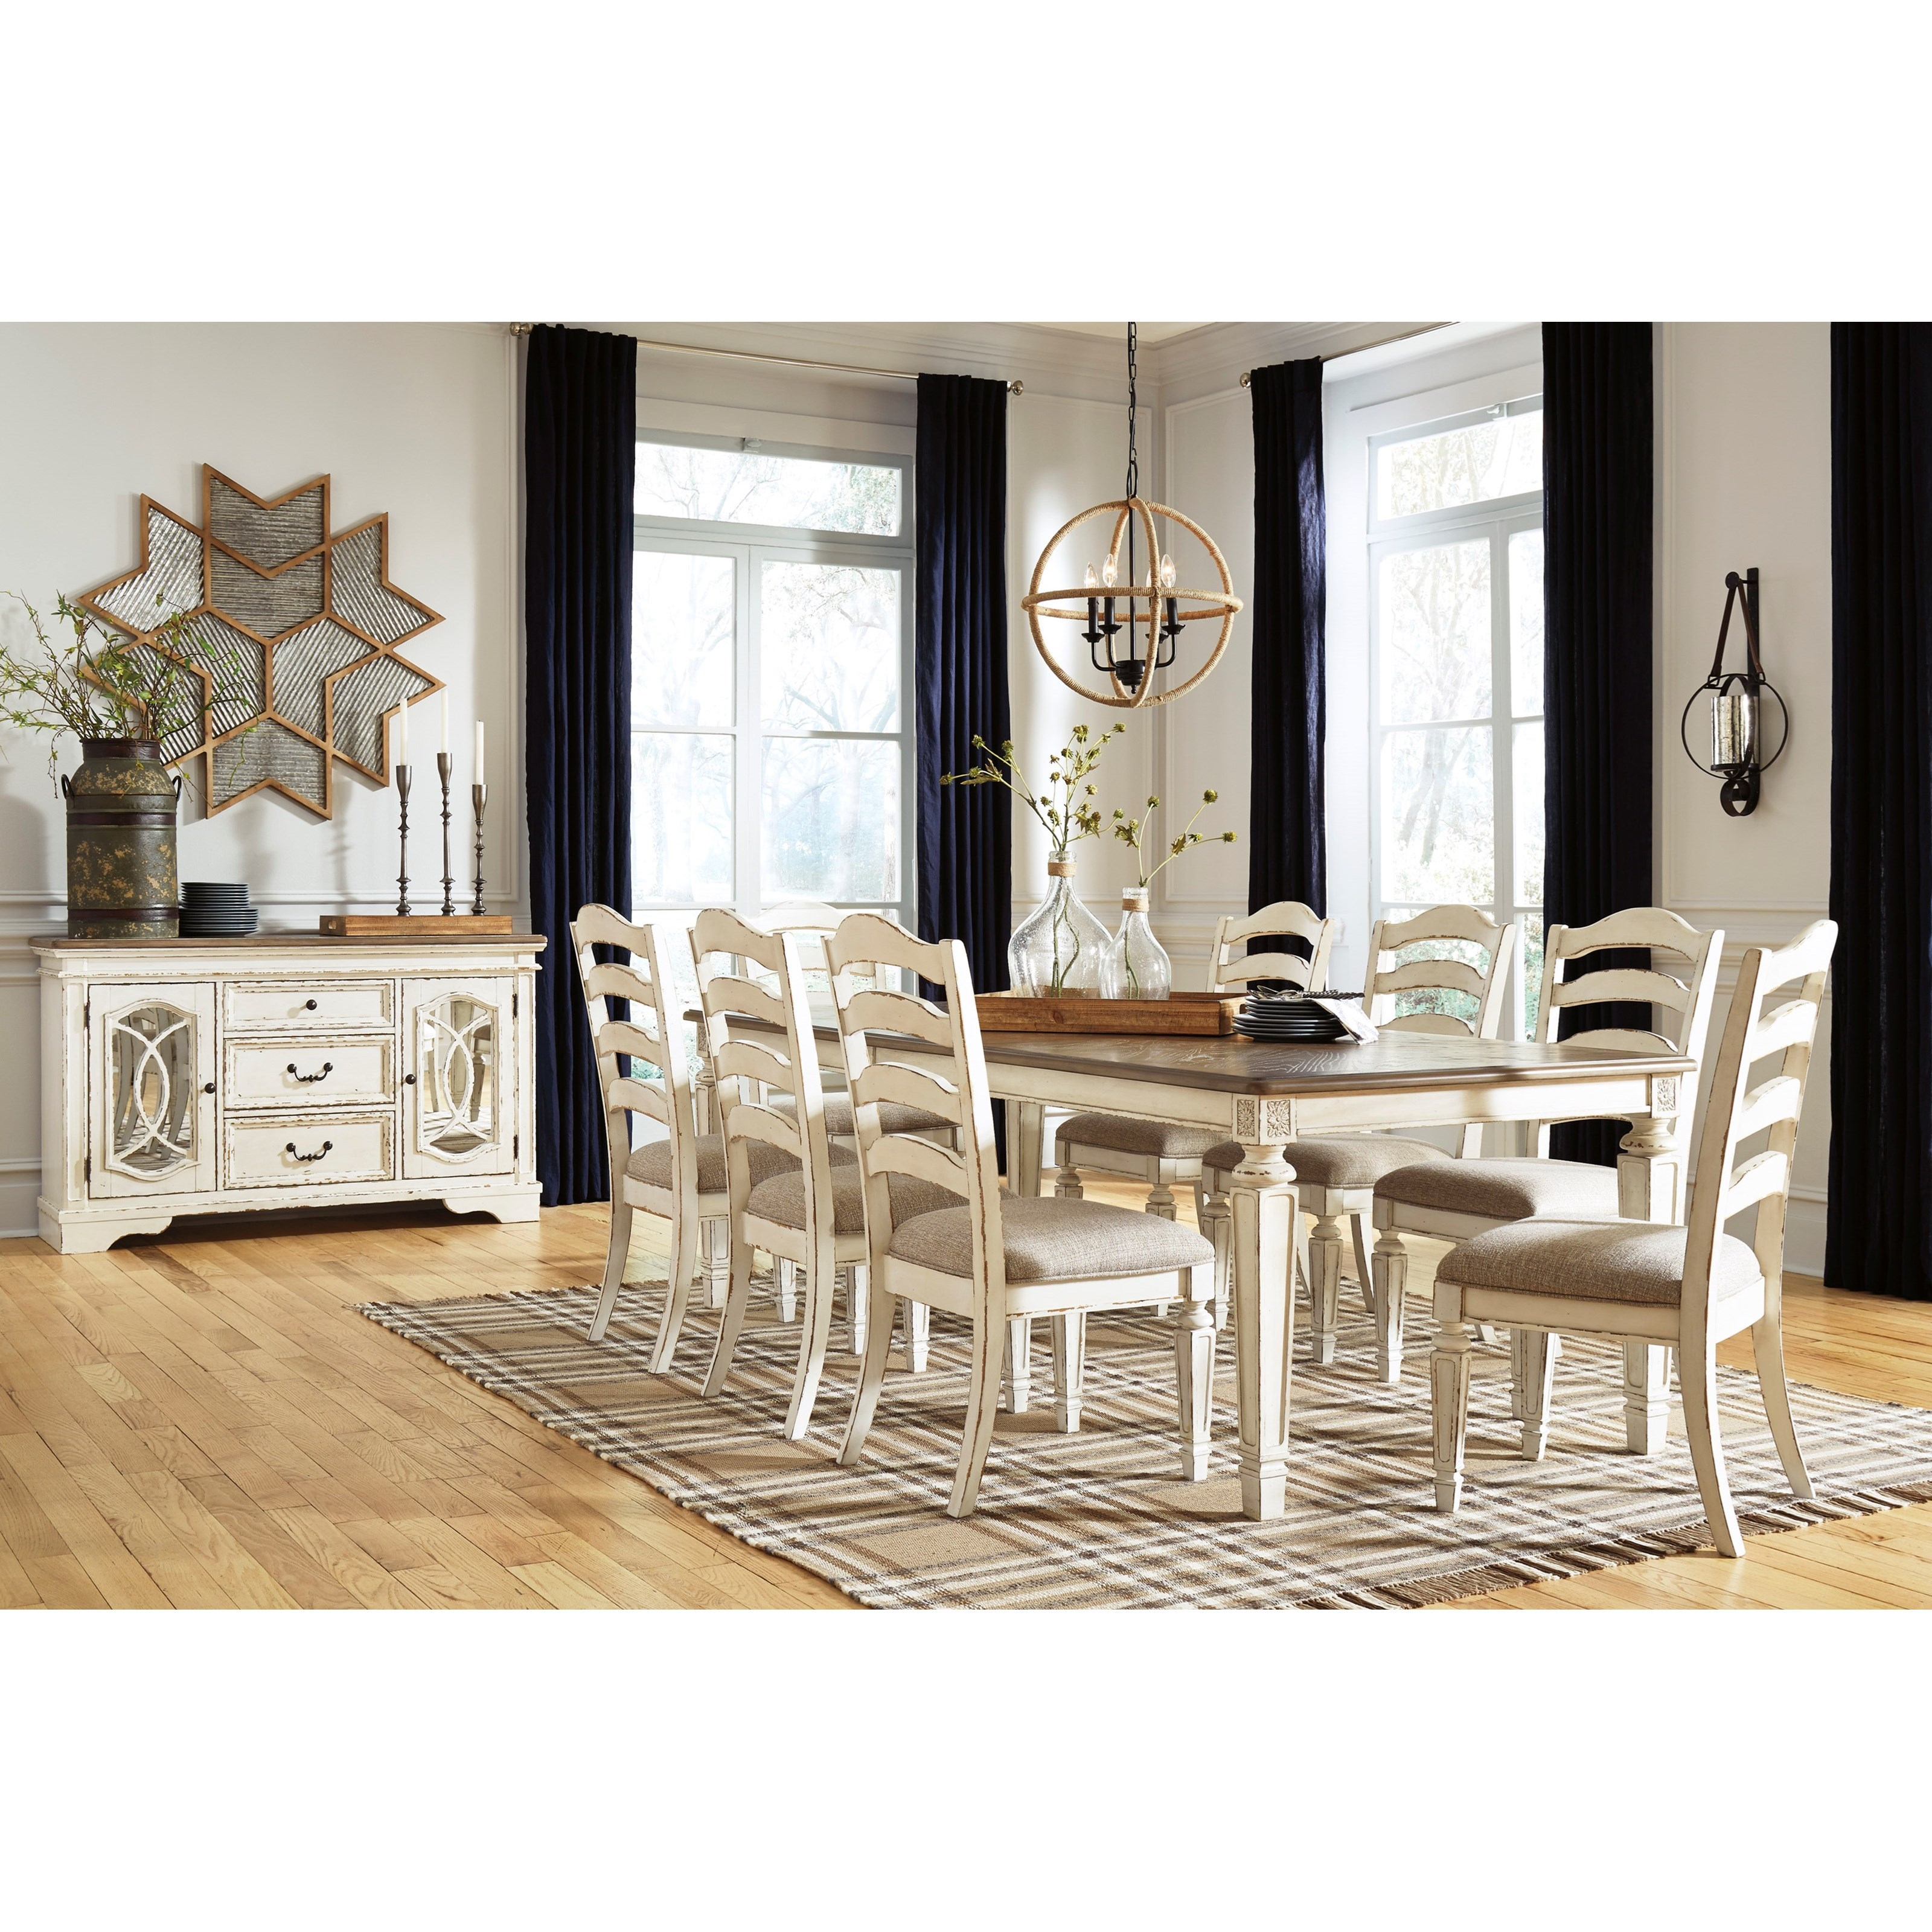 Signature Design By Ashley Besteneer Formal Dining Room: Signature Design By Ashley Realyn Formal Dining Room Group